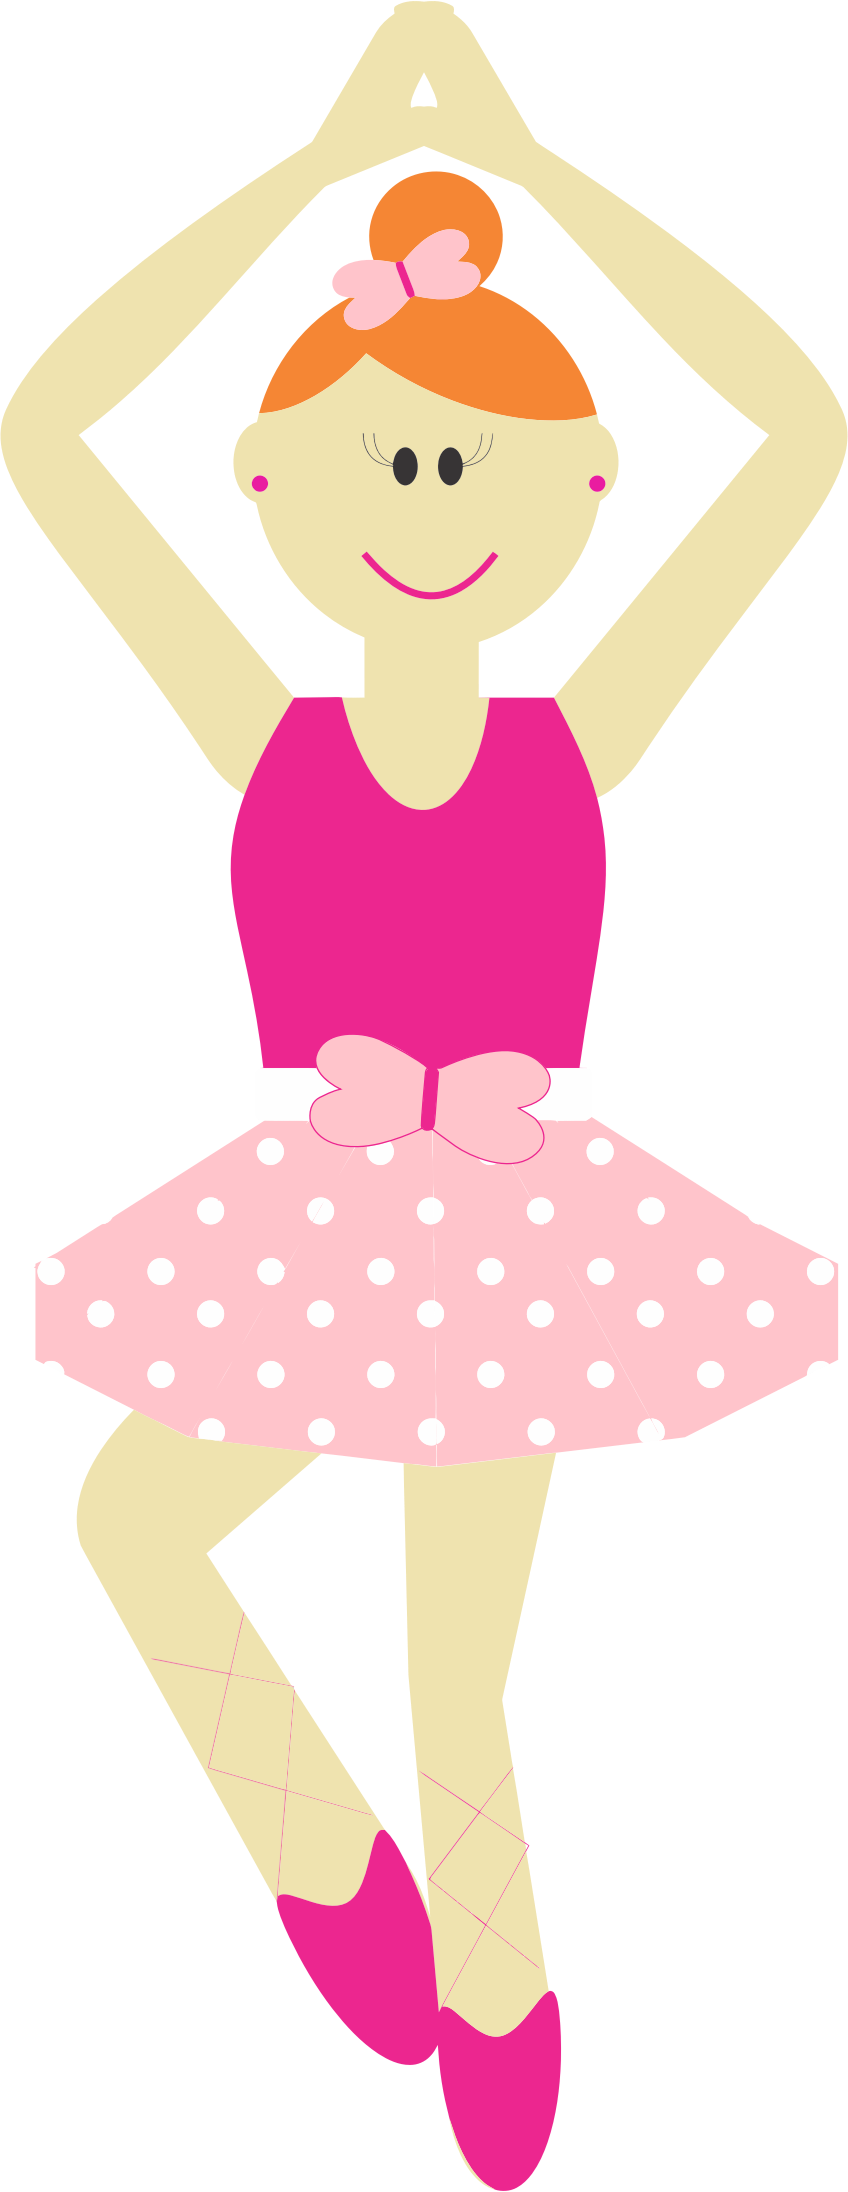 Cute Cartoon Ballerina by GDJ